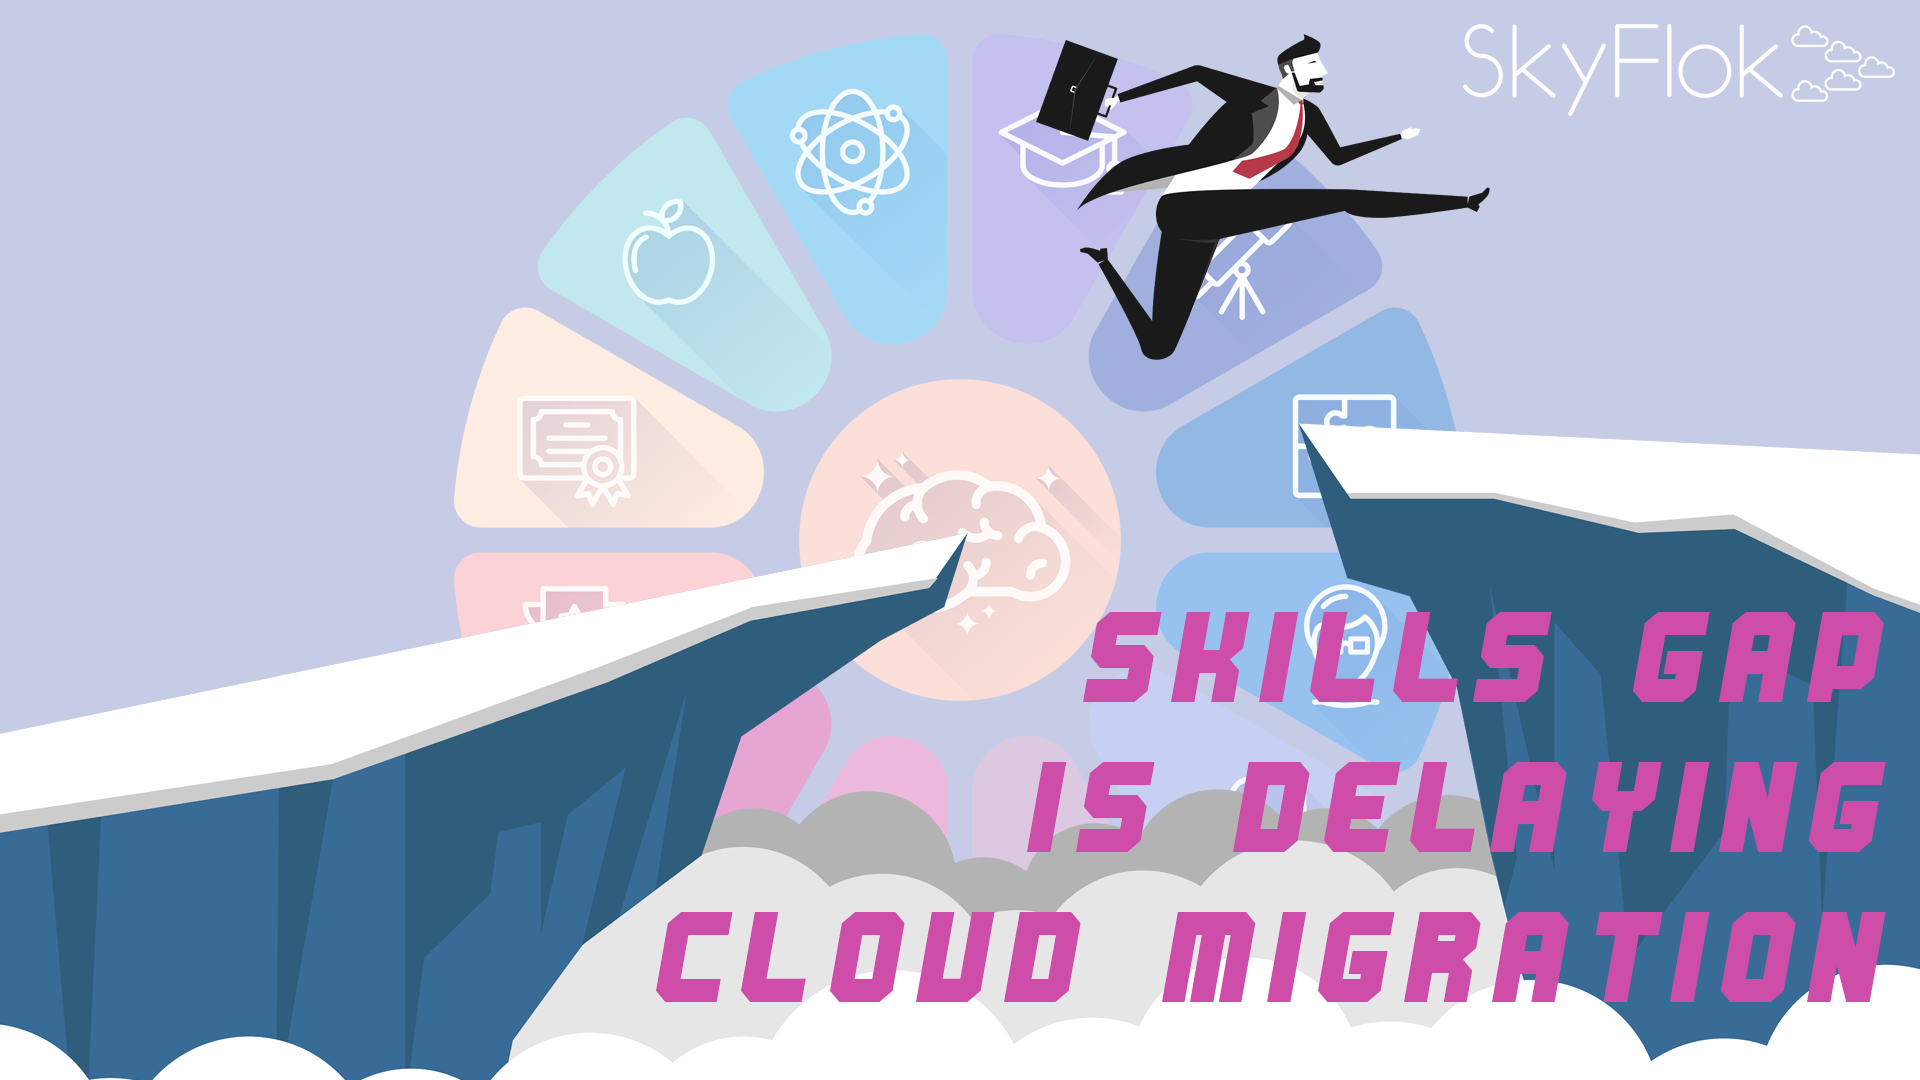 Cloud security: The skills gap is delaying cloud migration